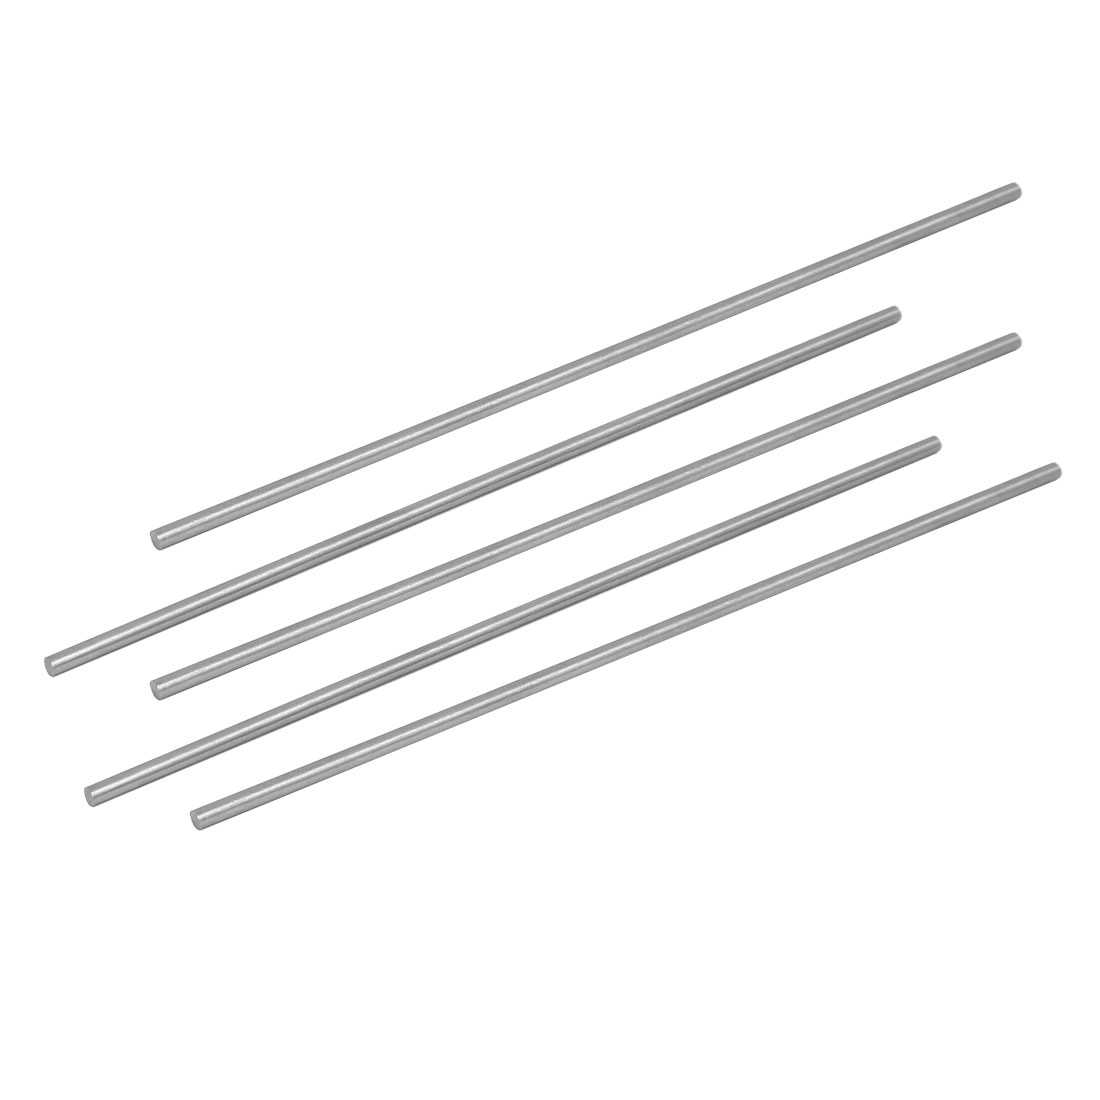 3.5mm Dia 200mm Length HSS Round Shaft Rod Bar Lathe Tools Gray 5pcs